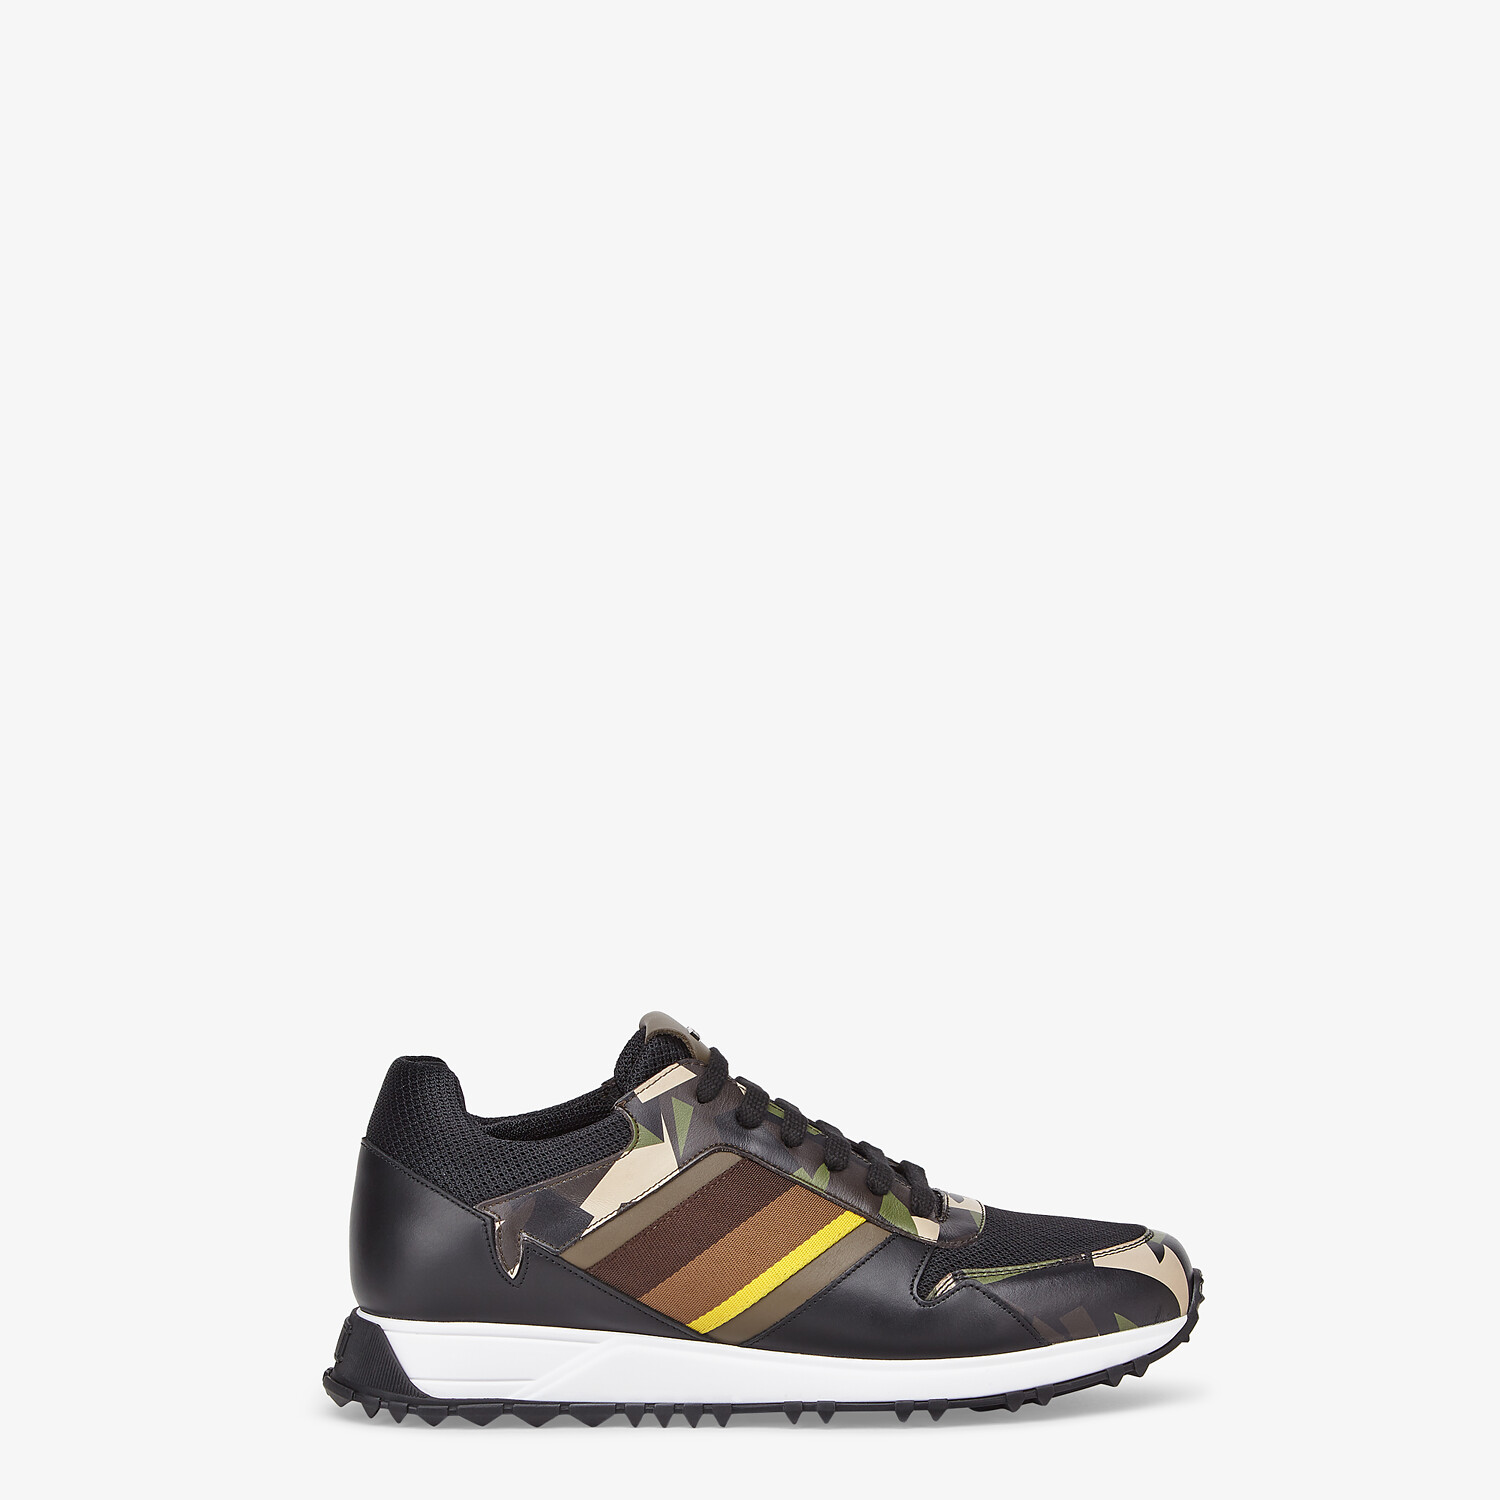 FENDI SNEAKERS - Multicolor leather low-tops - view 1 detail